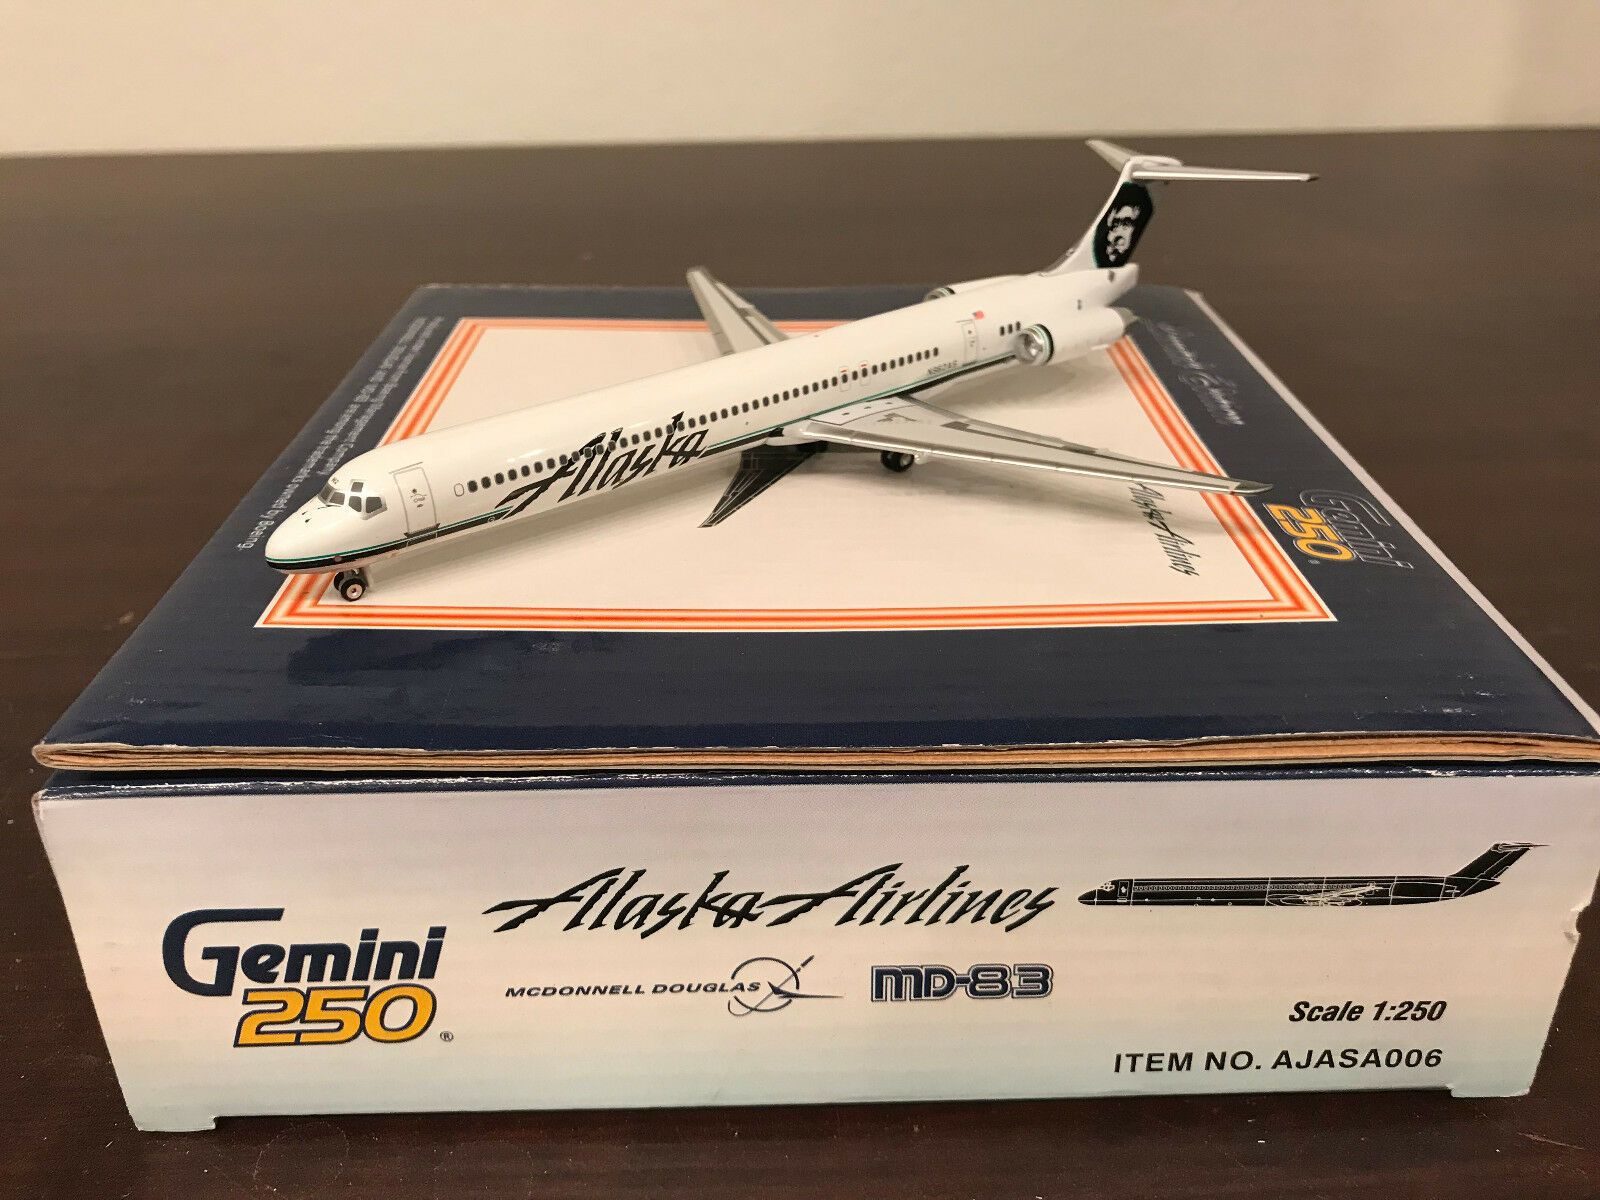 Contemporary Manufacture 19029 Gemini Jets 1 250 Scale Alaska Airlines Md 83 N962as Ajasa006 Rare Buy It Now Only 49 95 On Ebay Contemporary Manufactur